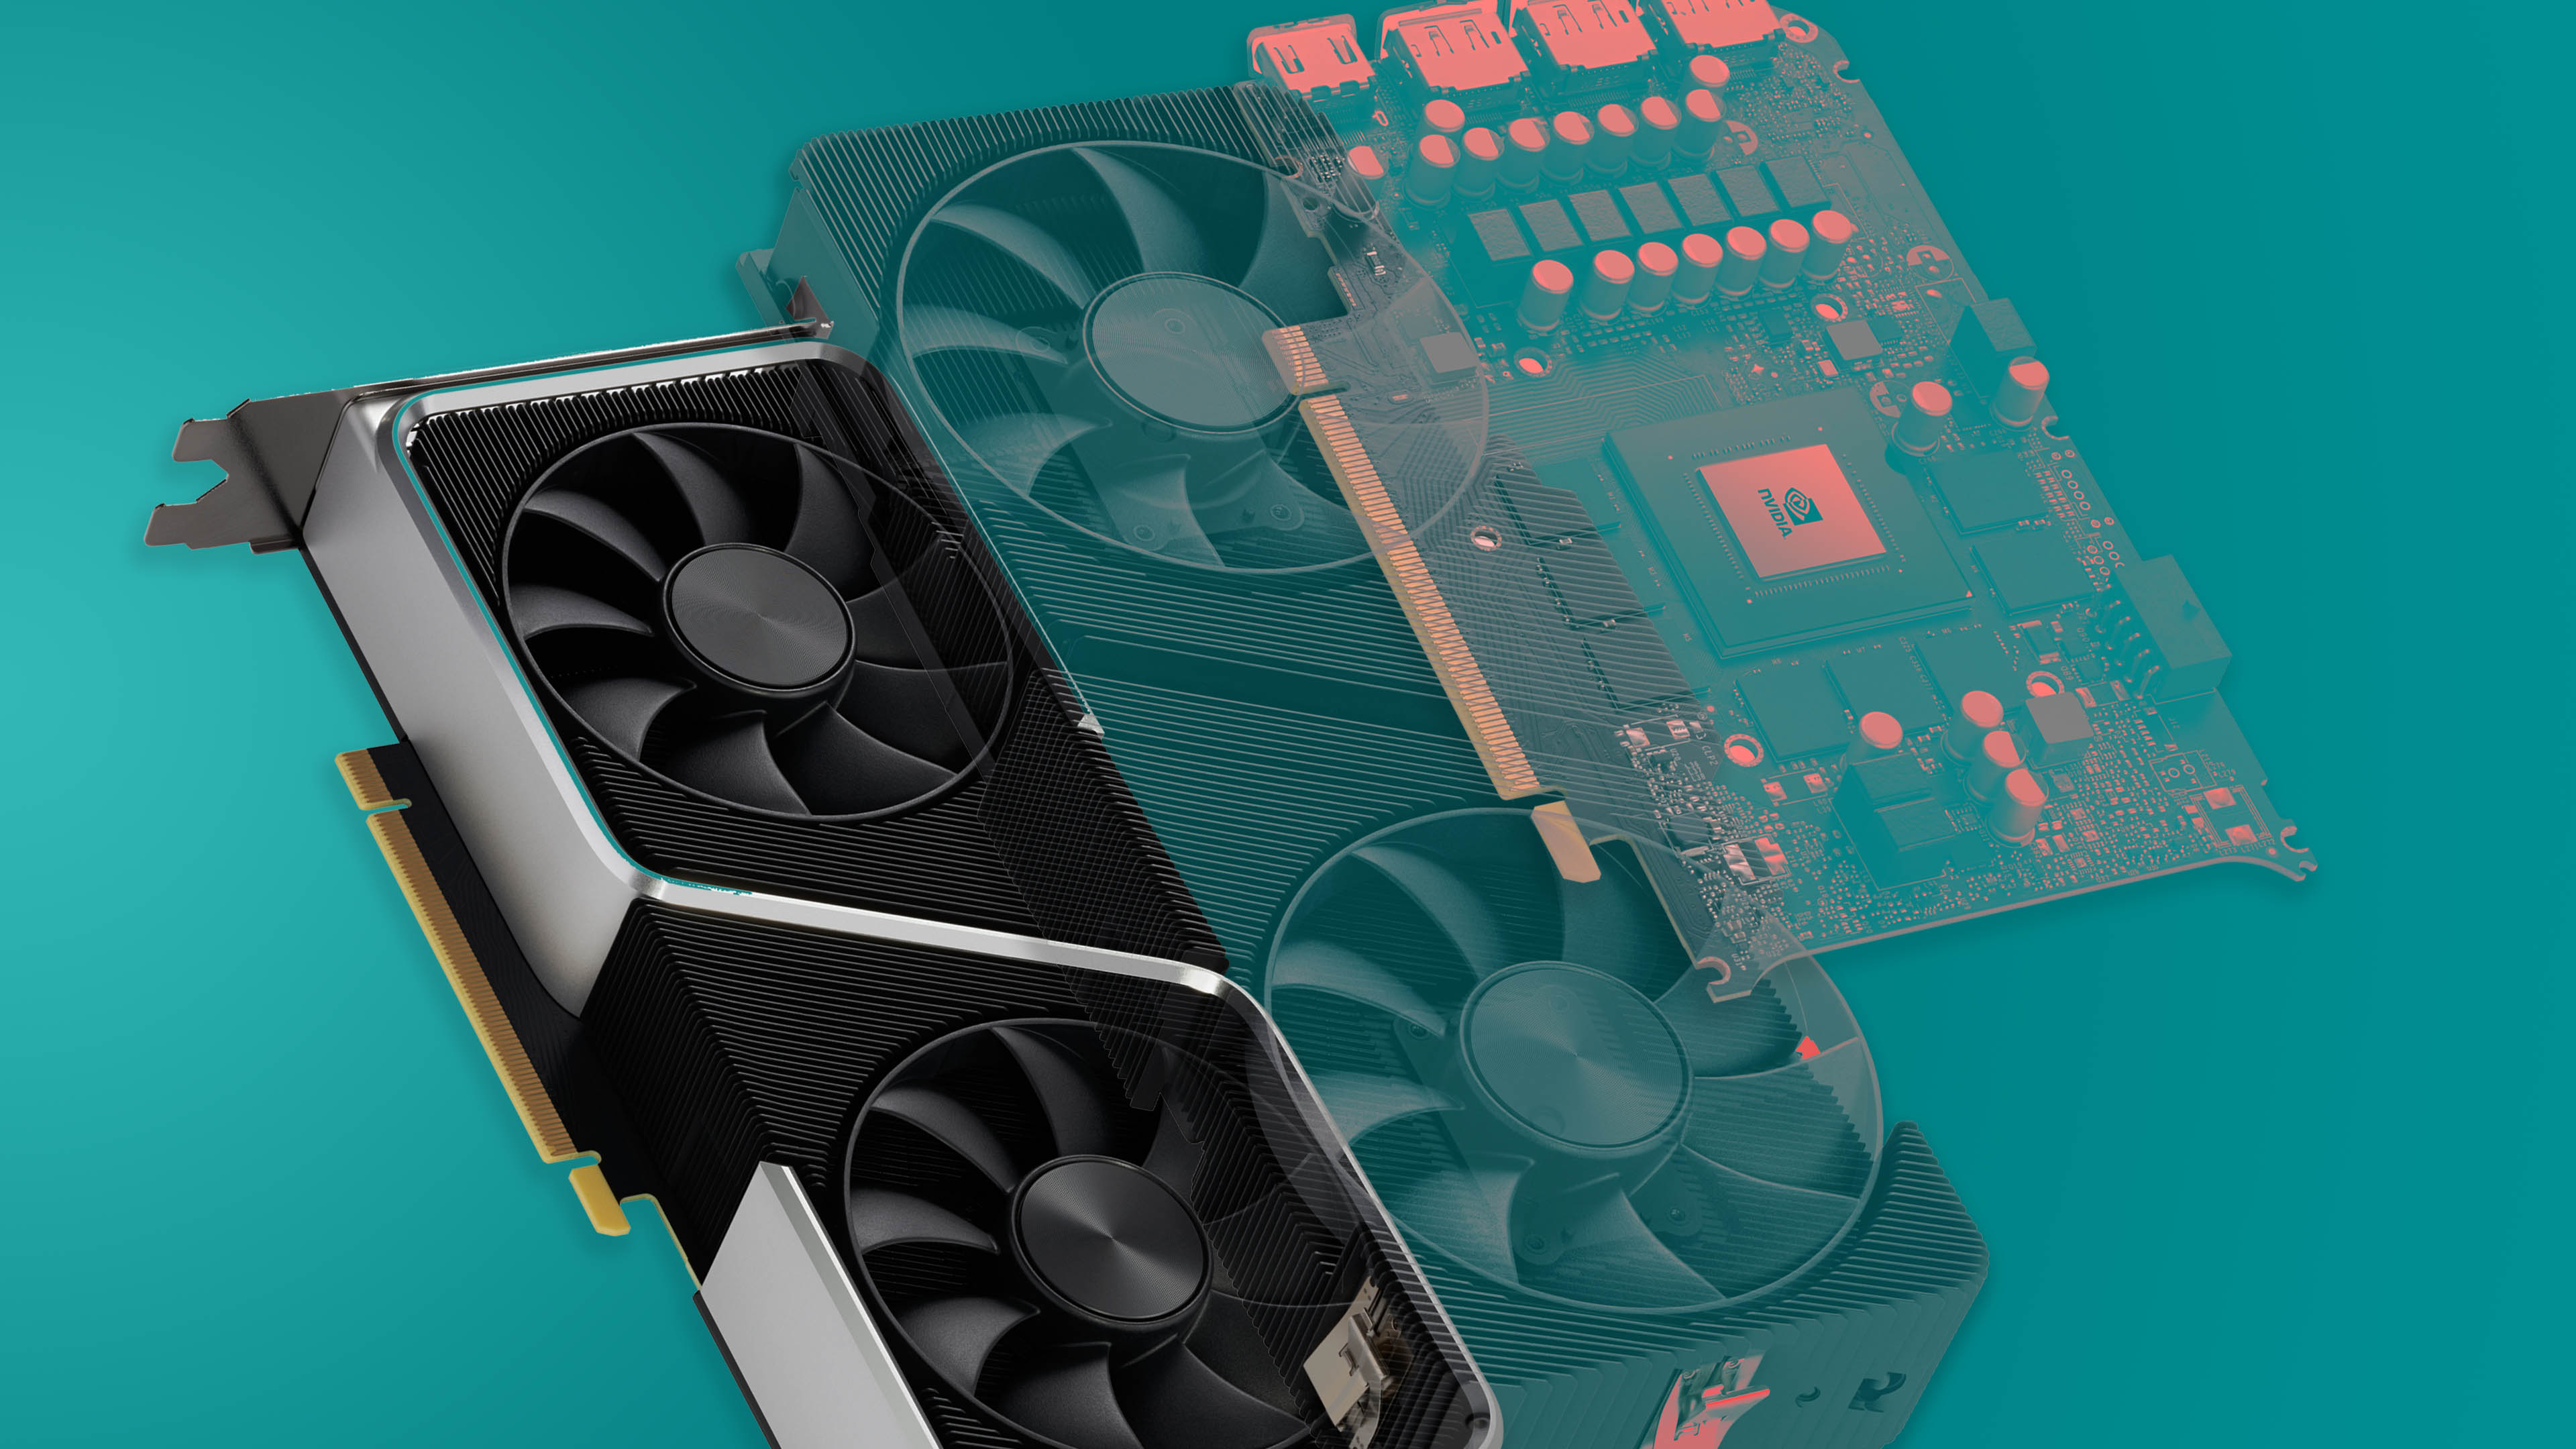 Where to buy an Nvidia RTX 3060 Ti graphics card - live updates